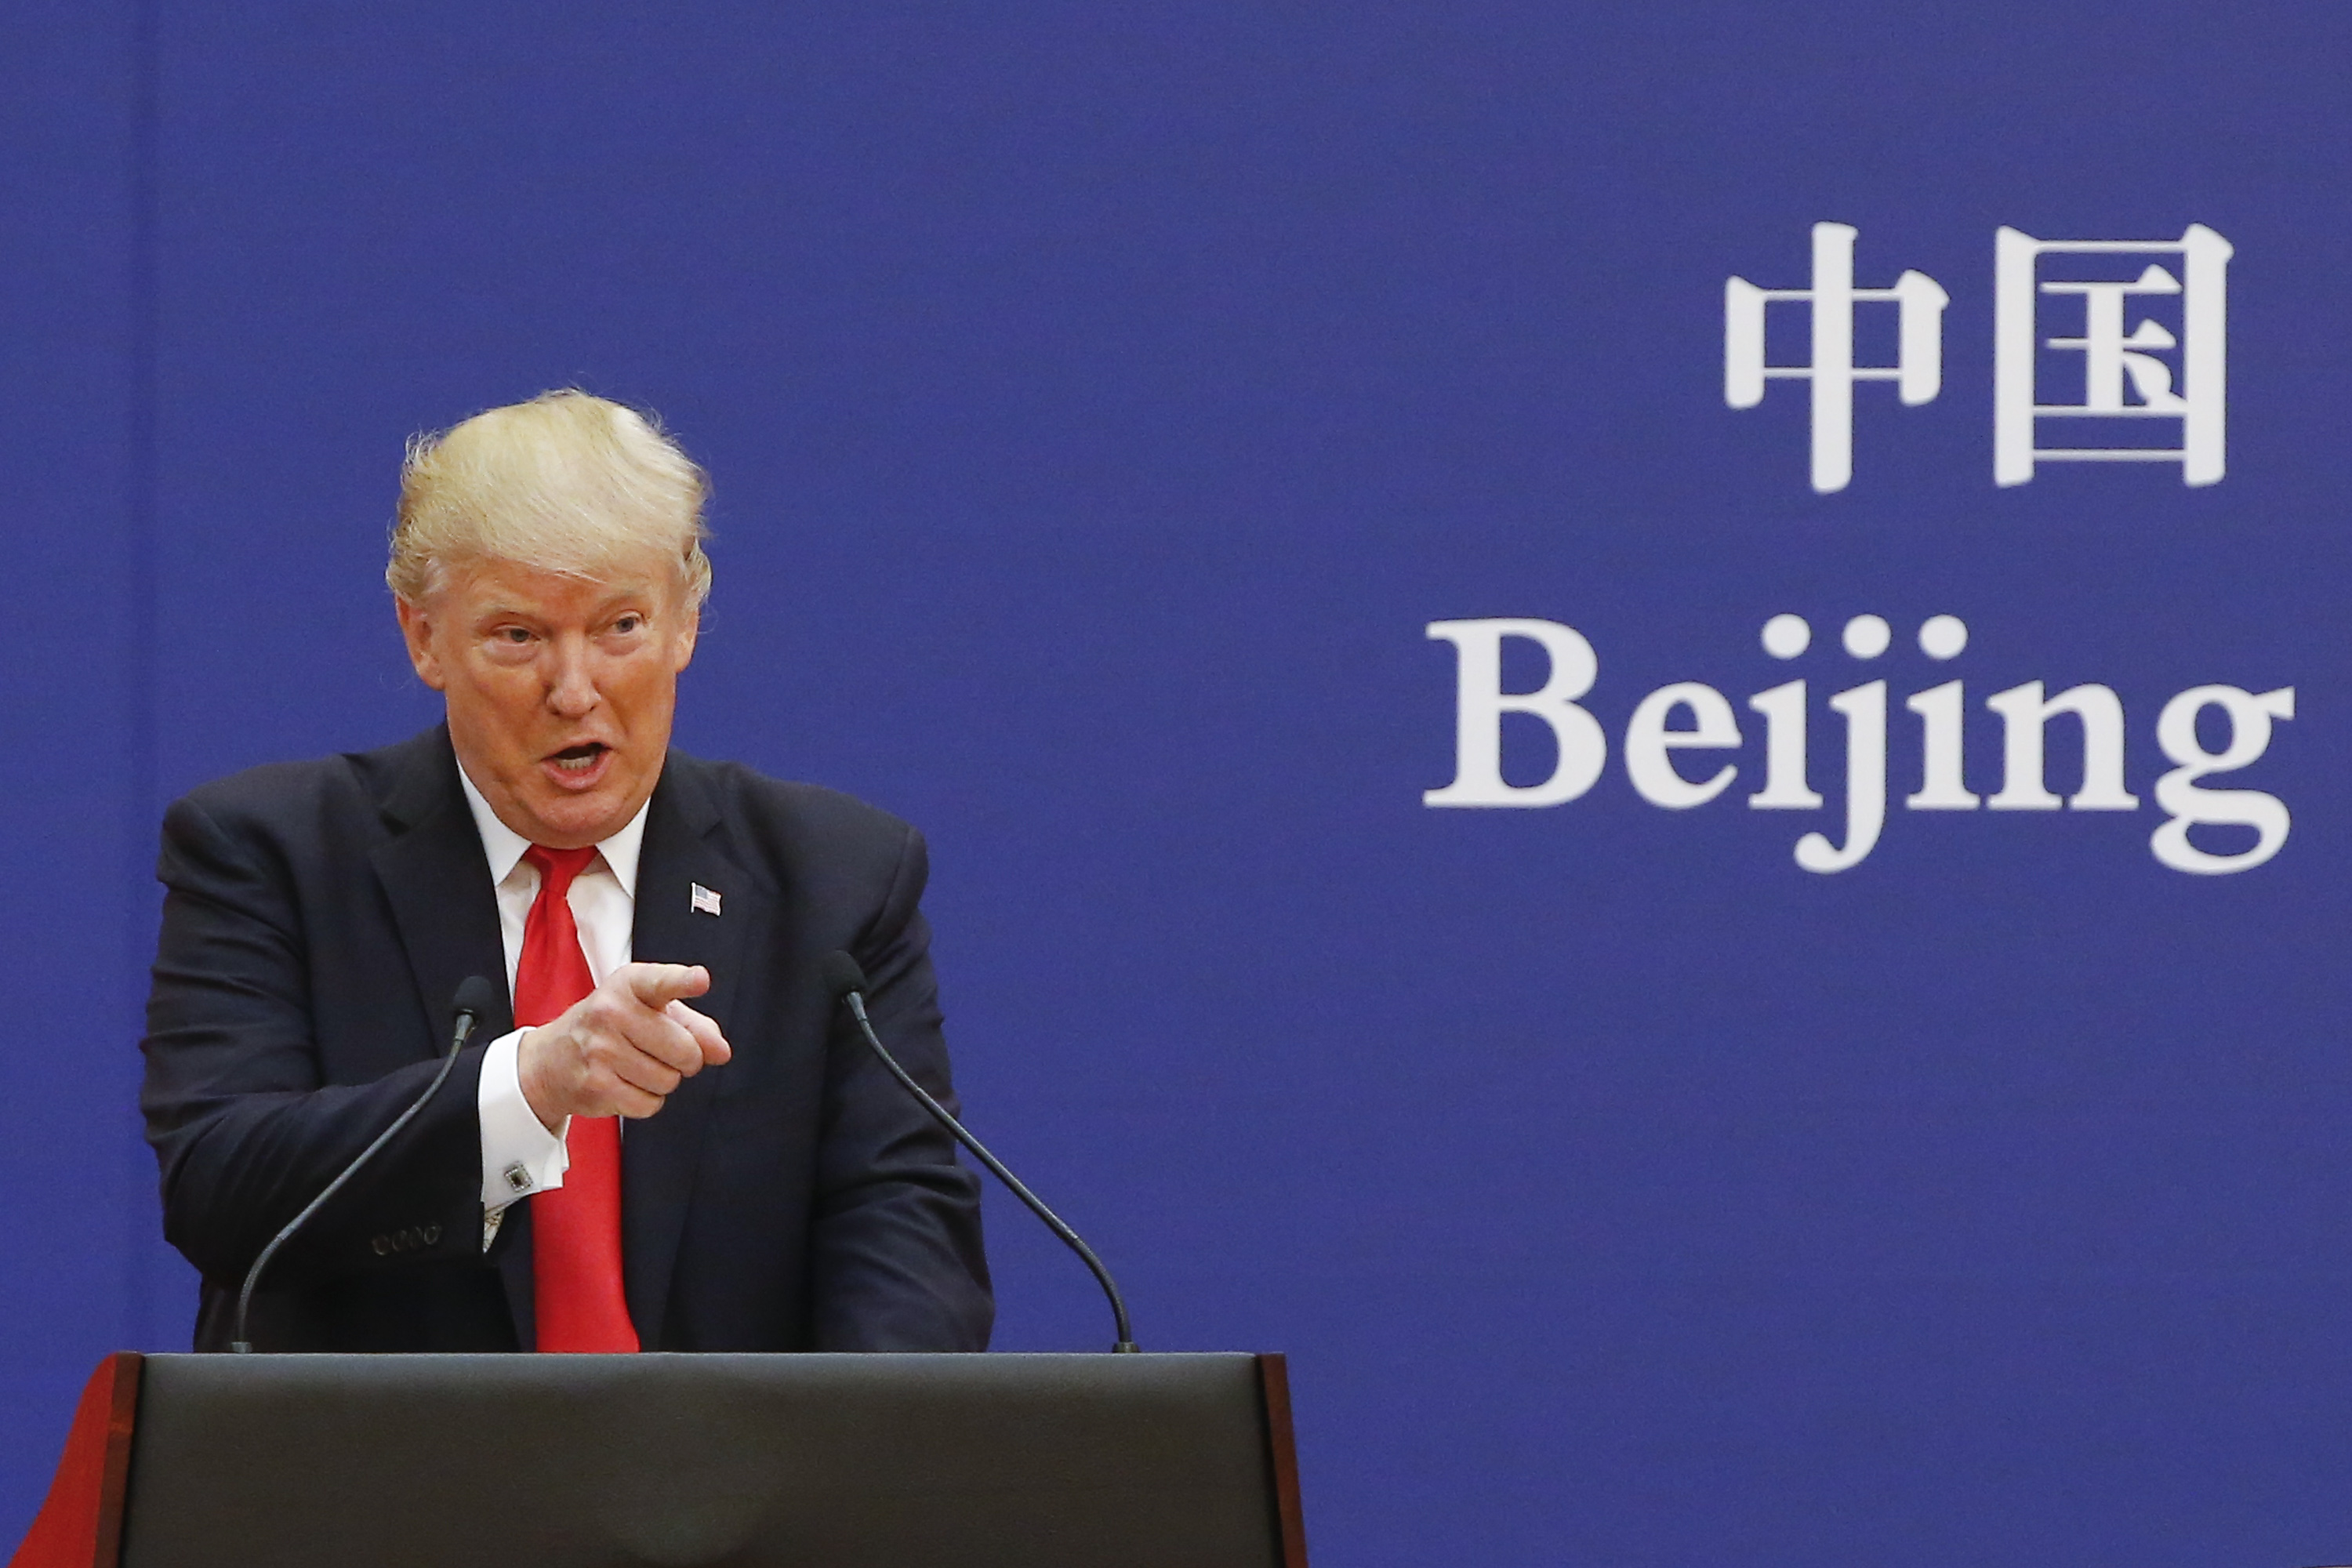 U.S. President Donald Trump and China's President Xi Jinping (not shown) speak to business leaders at the Great Hall of the People on November 9, 2017 in Beijing, China. Trump is on a 10-day trip to Asia. (Photo by Thomas Peter-Pool/Getty Images)